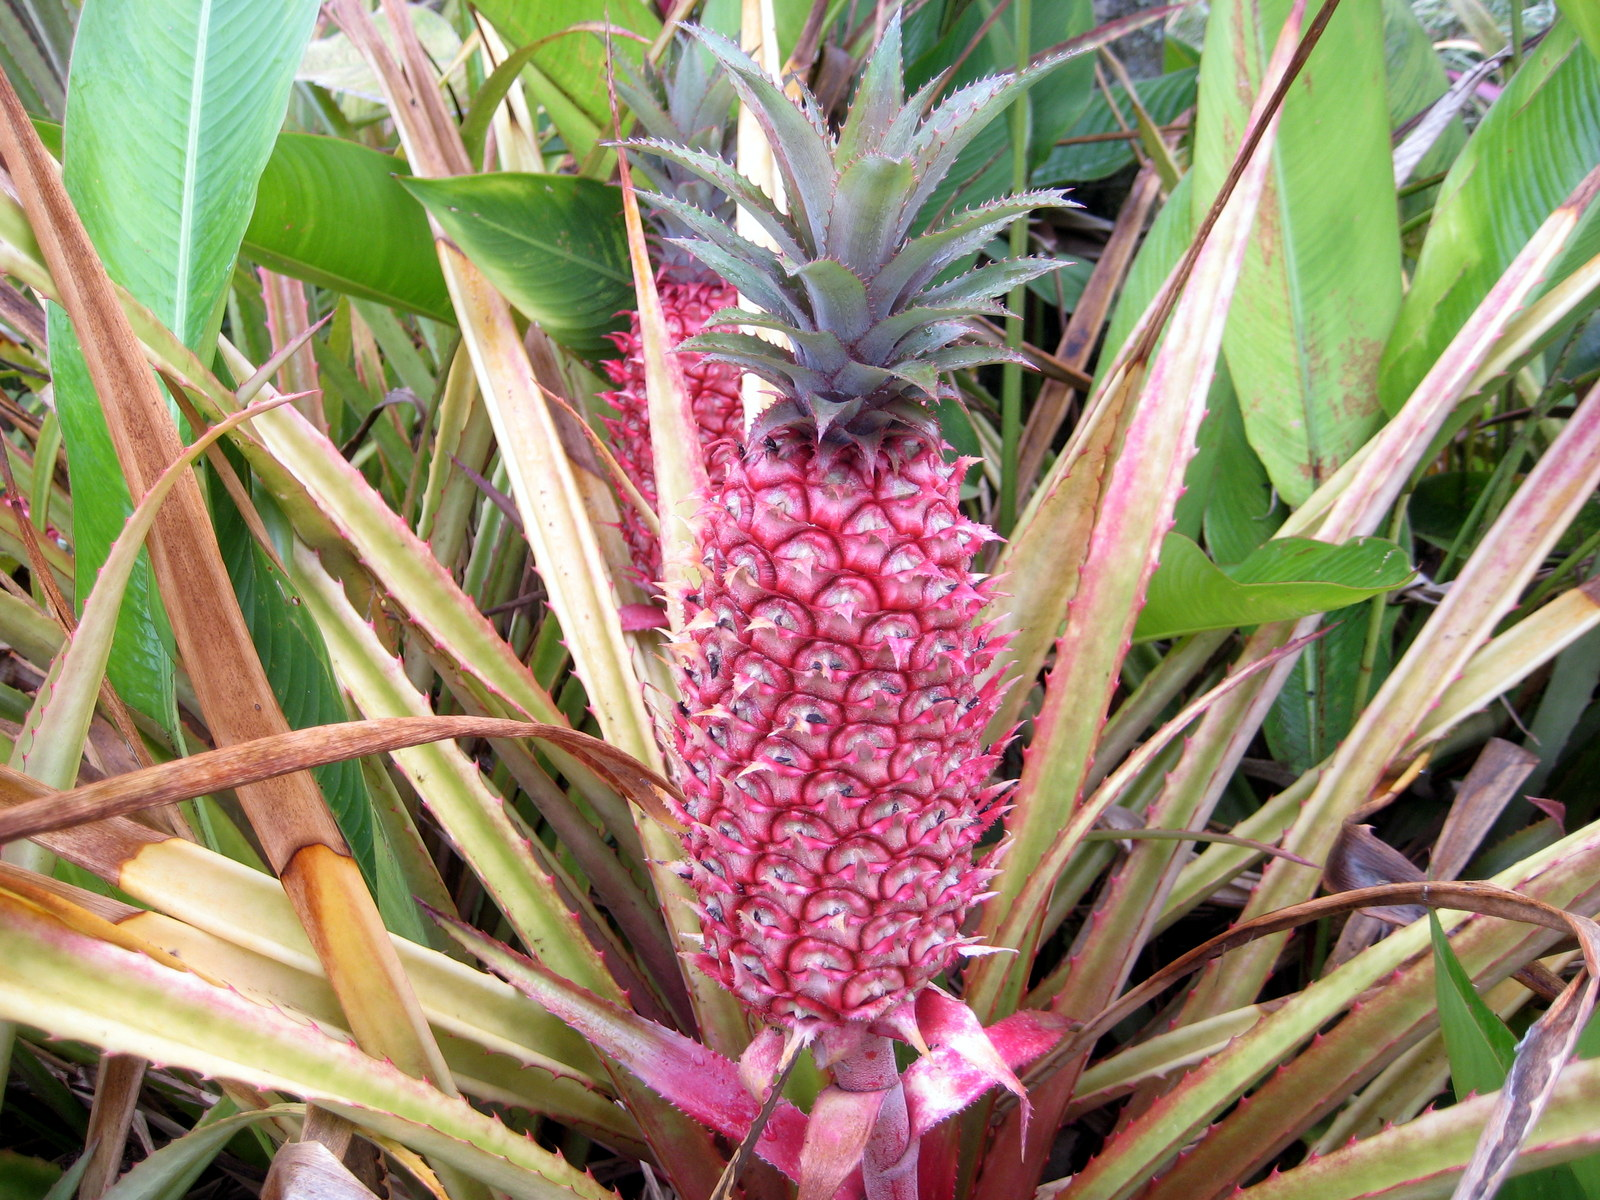 Pink Pineapples Are Now On Sale And Taking Over Social